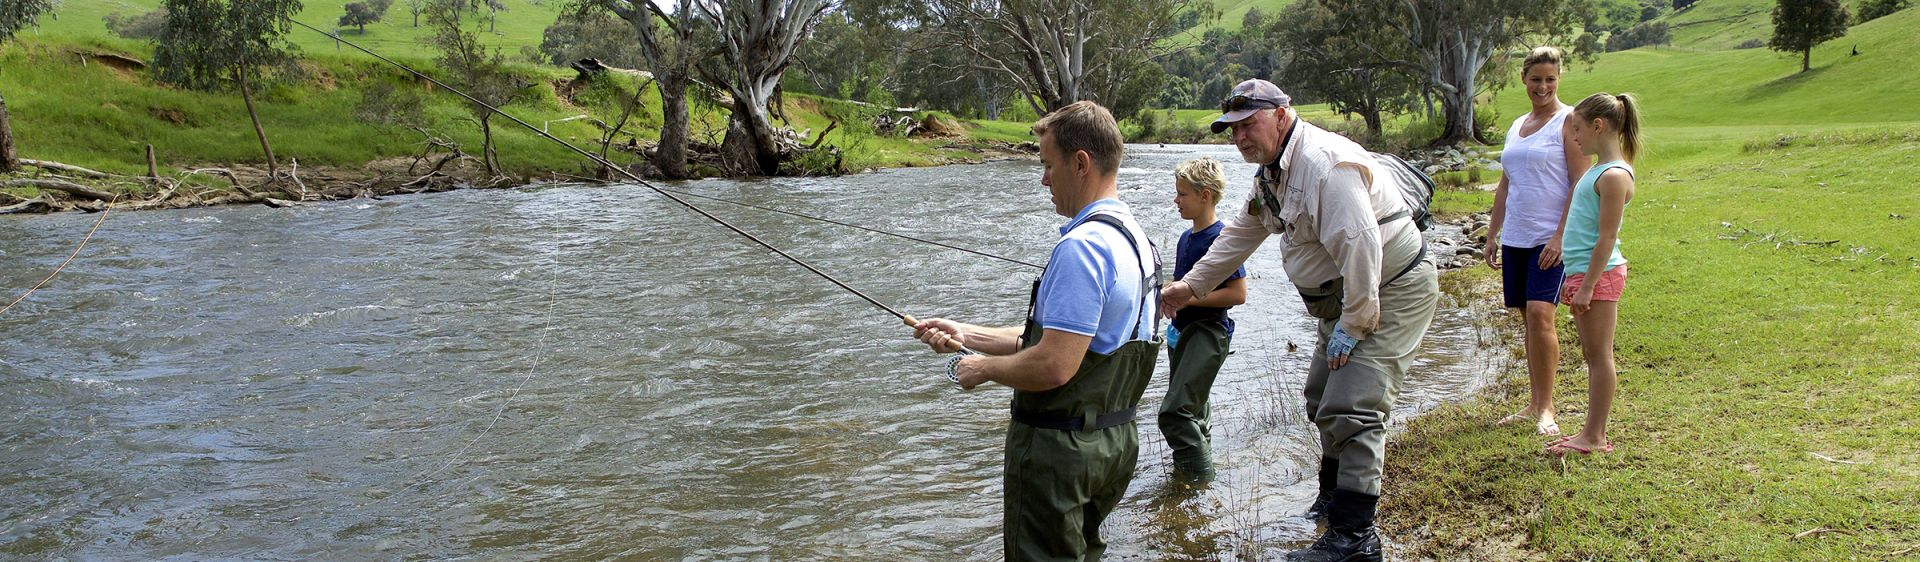 Family enjoying a fly fishing lessons with guide Dave Ducker on the Goobarragandra River, Tumut